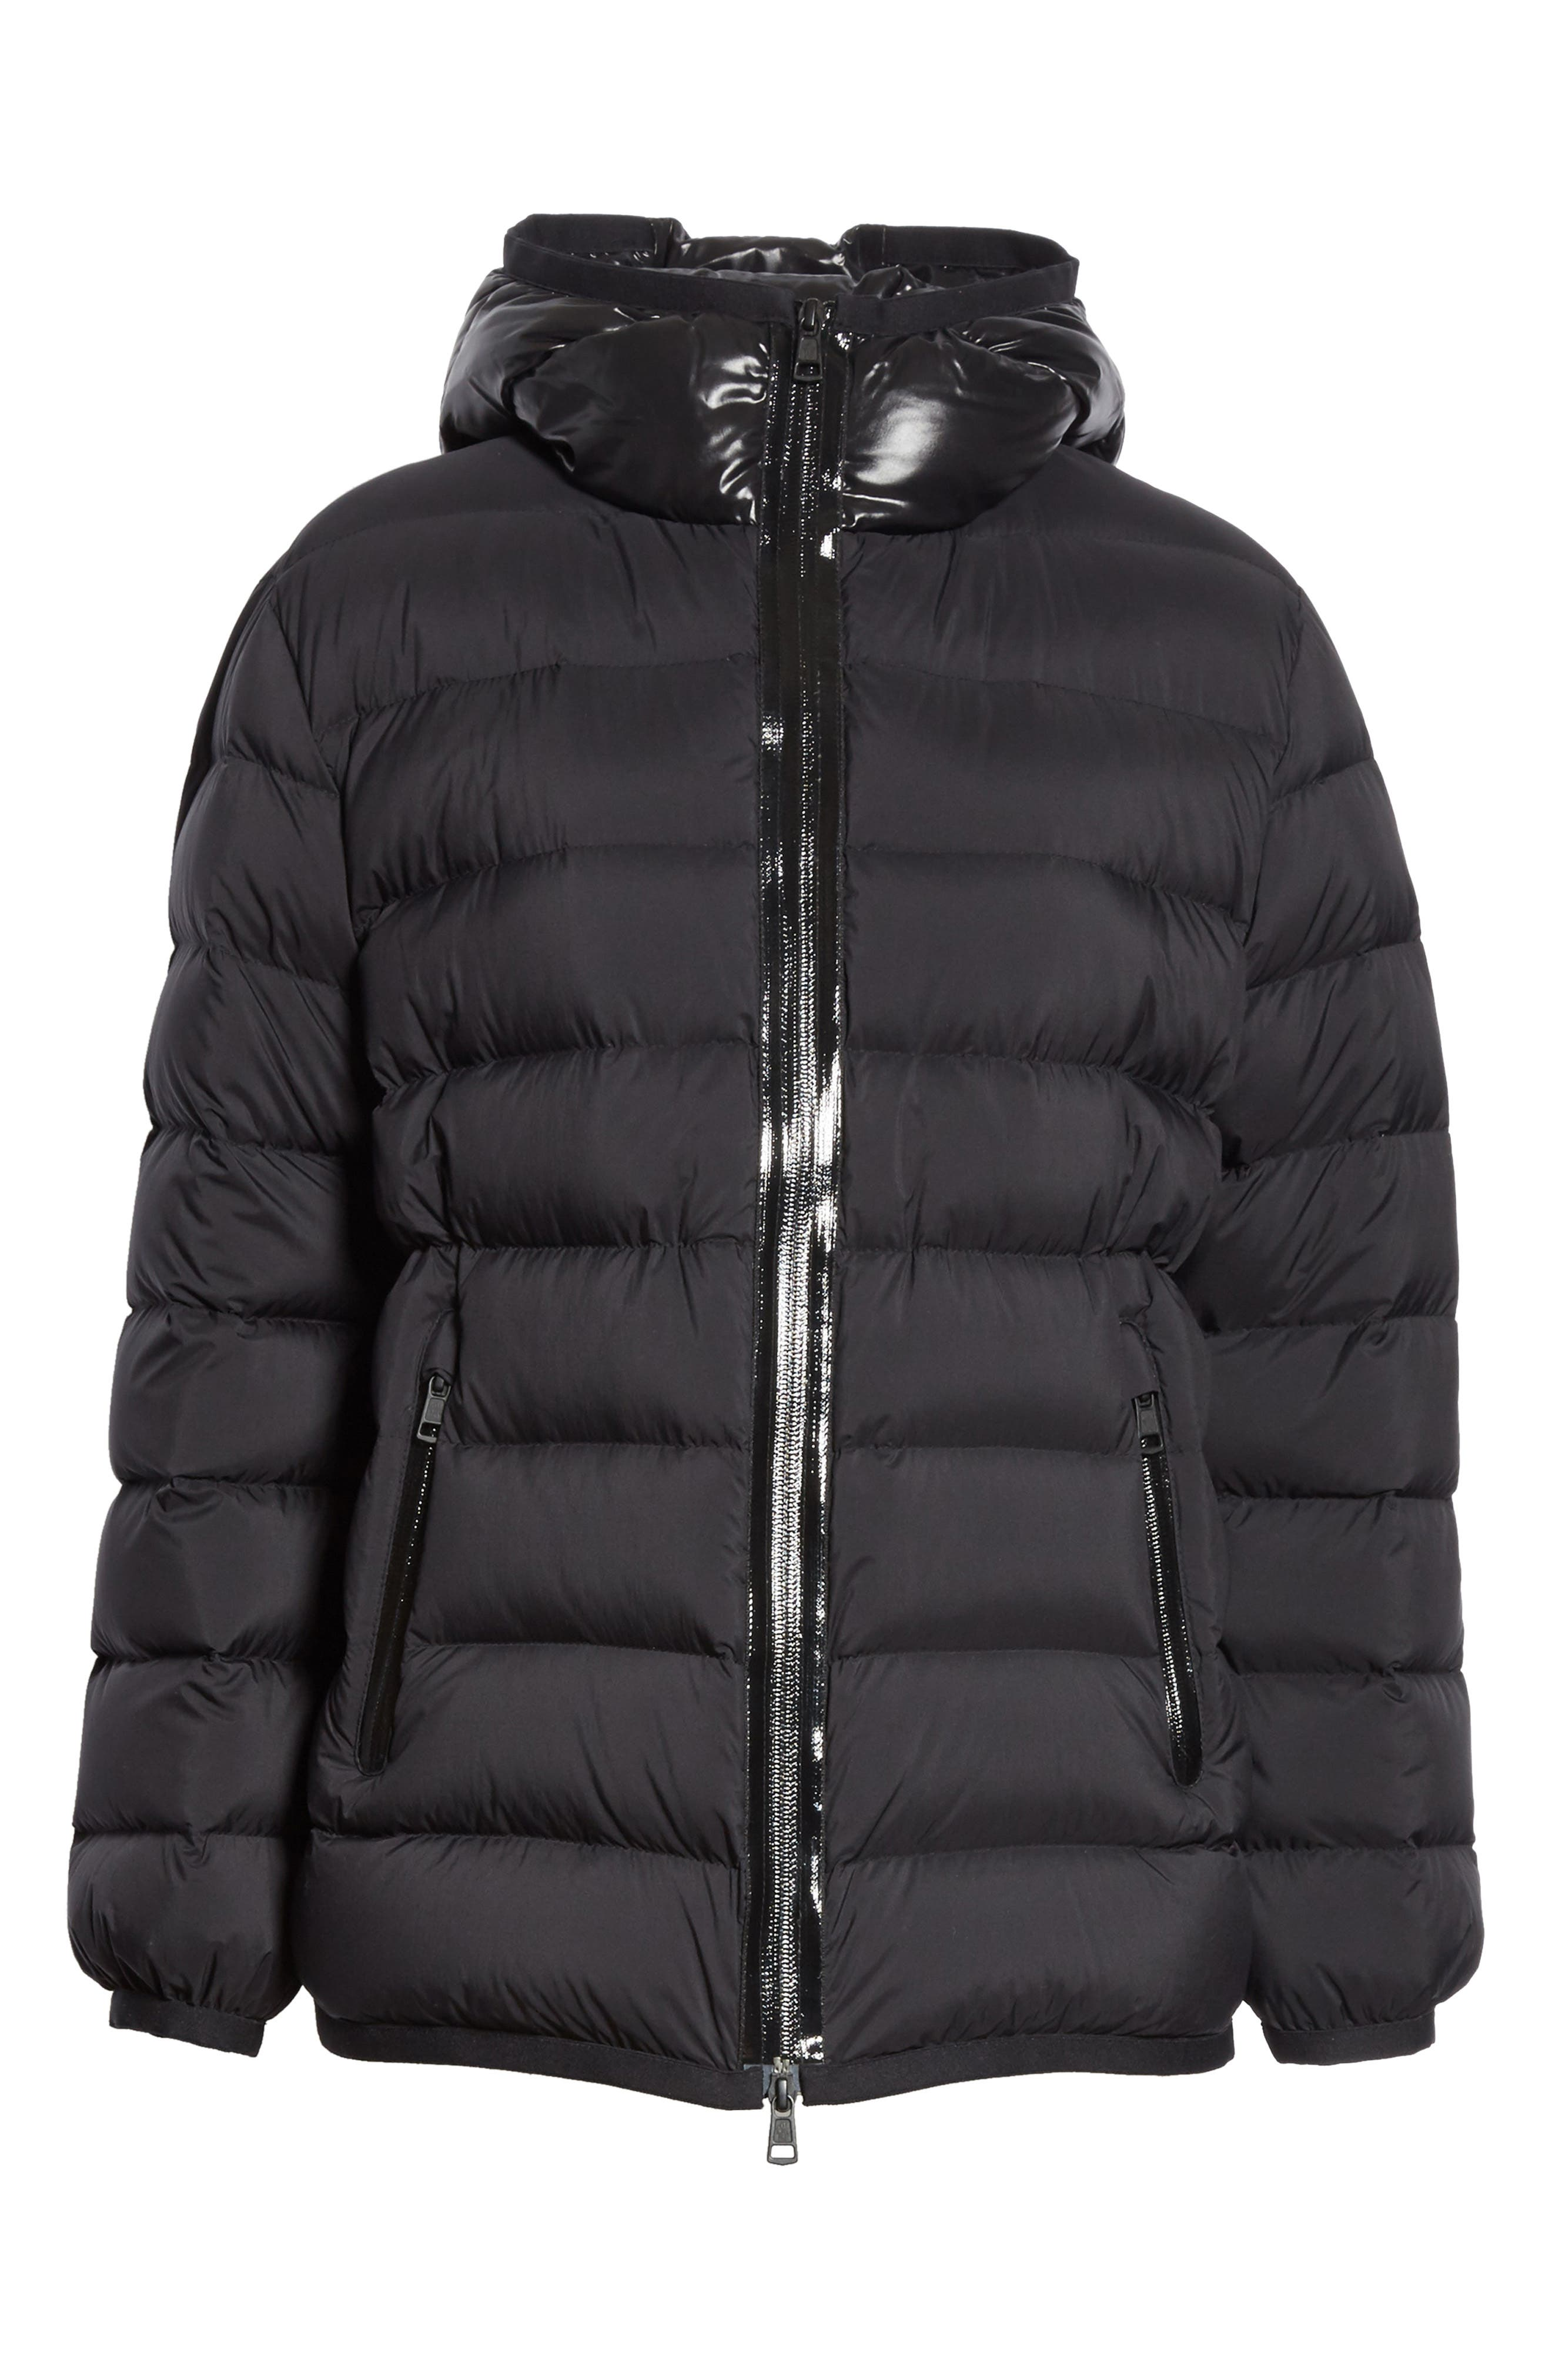 MONCLER, Goeland Quilted Down Jacket, Alternate thumbnail 6, color, 001